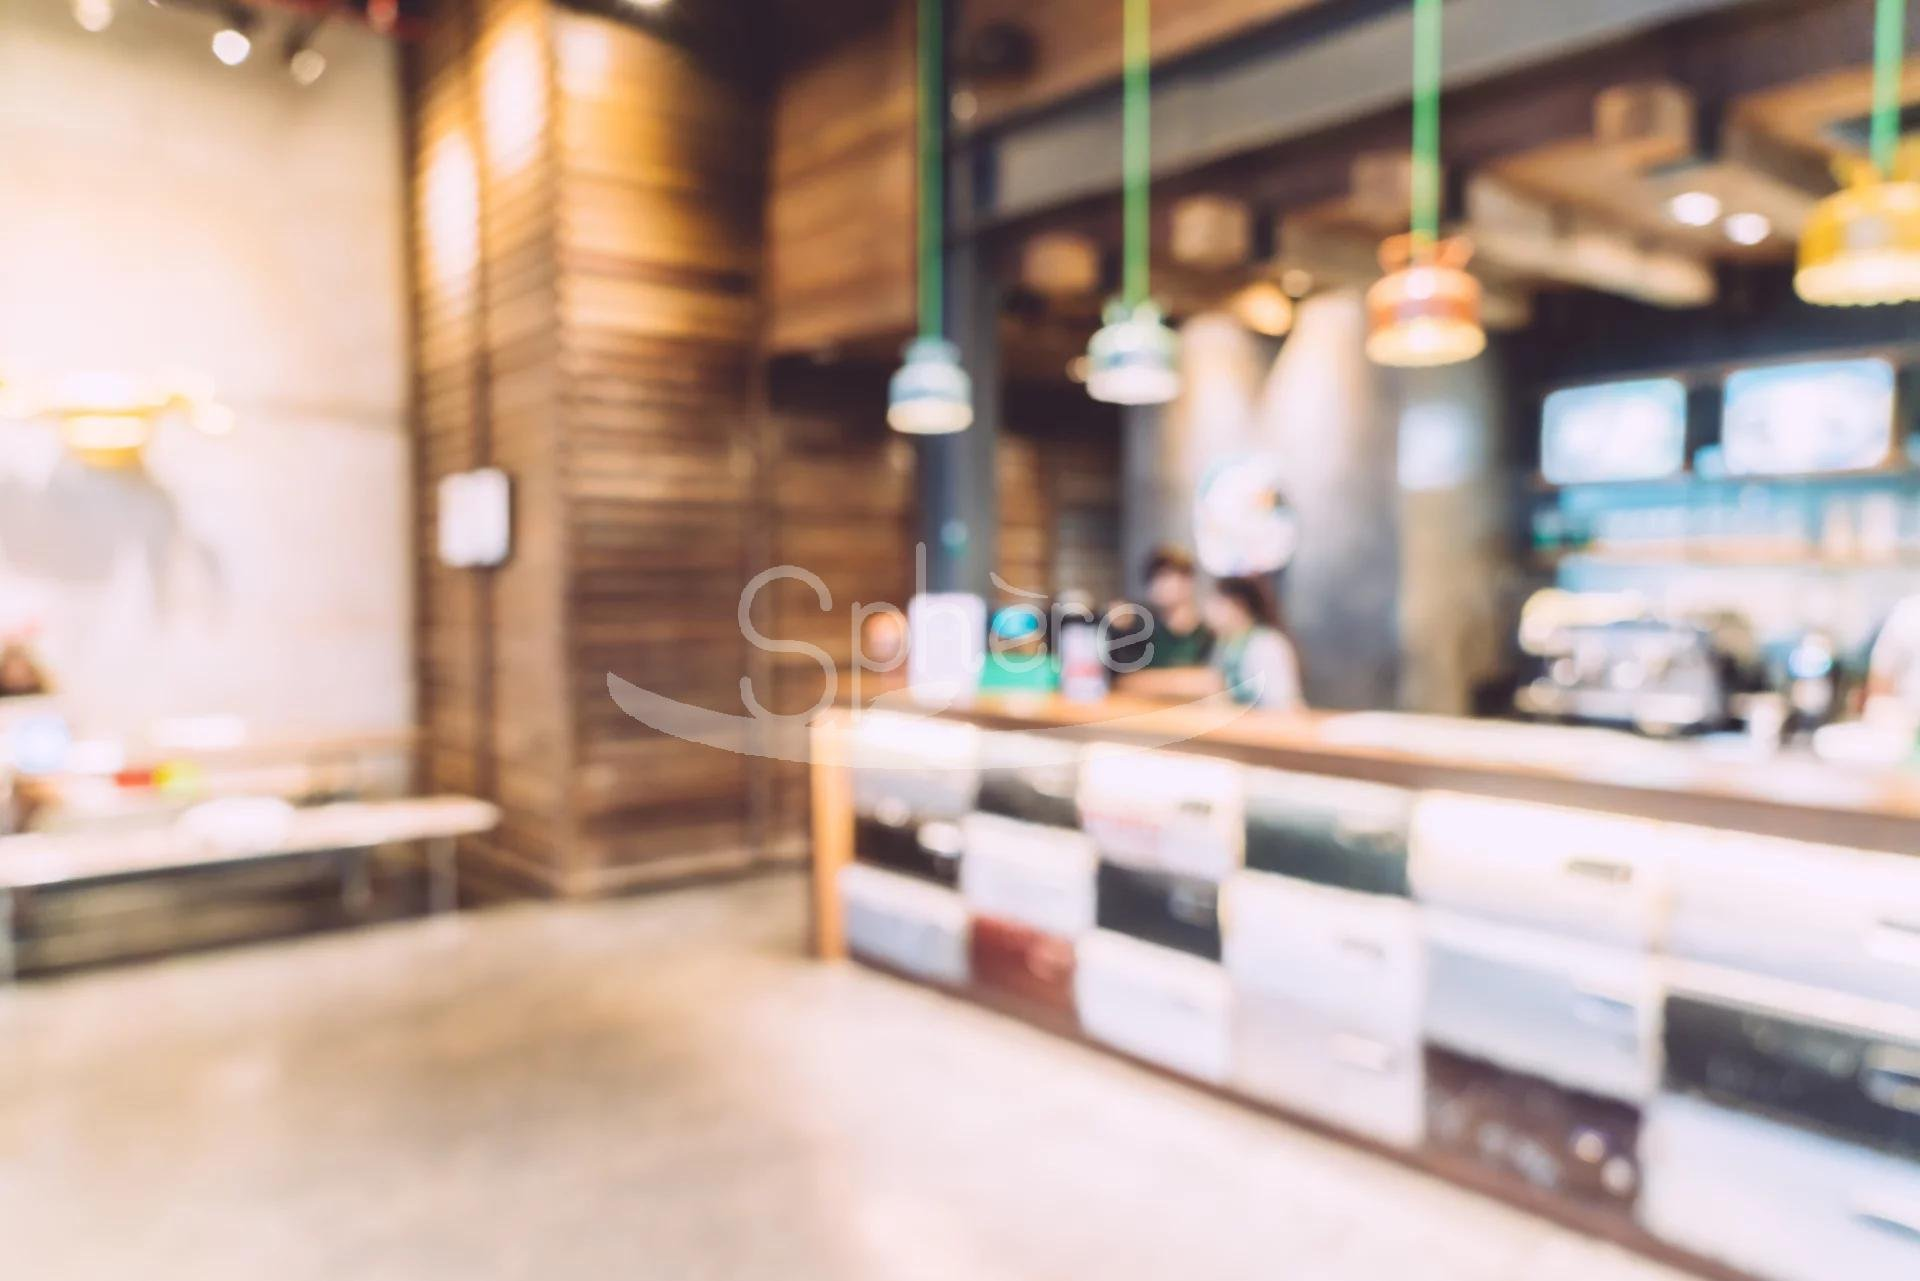 Abstract blur coffee shop interior background - vintage filter